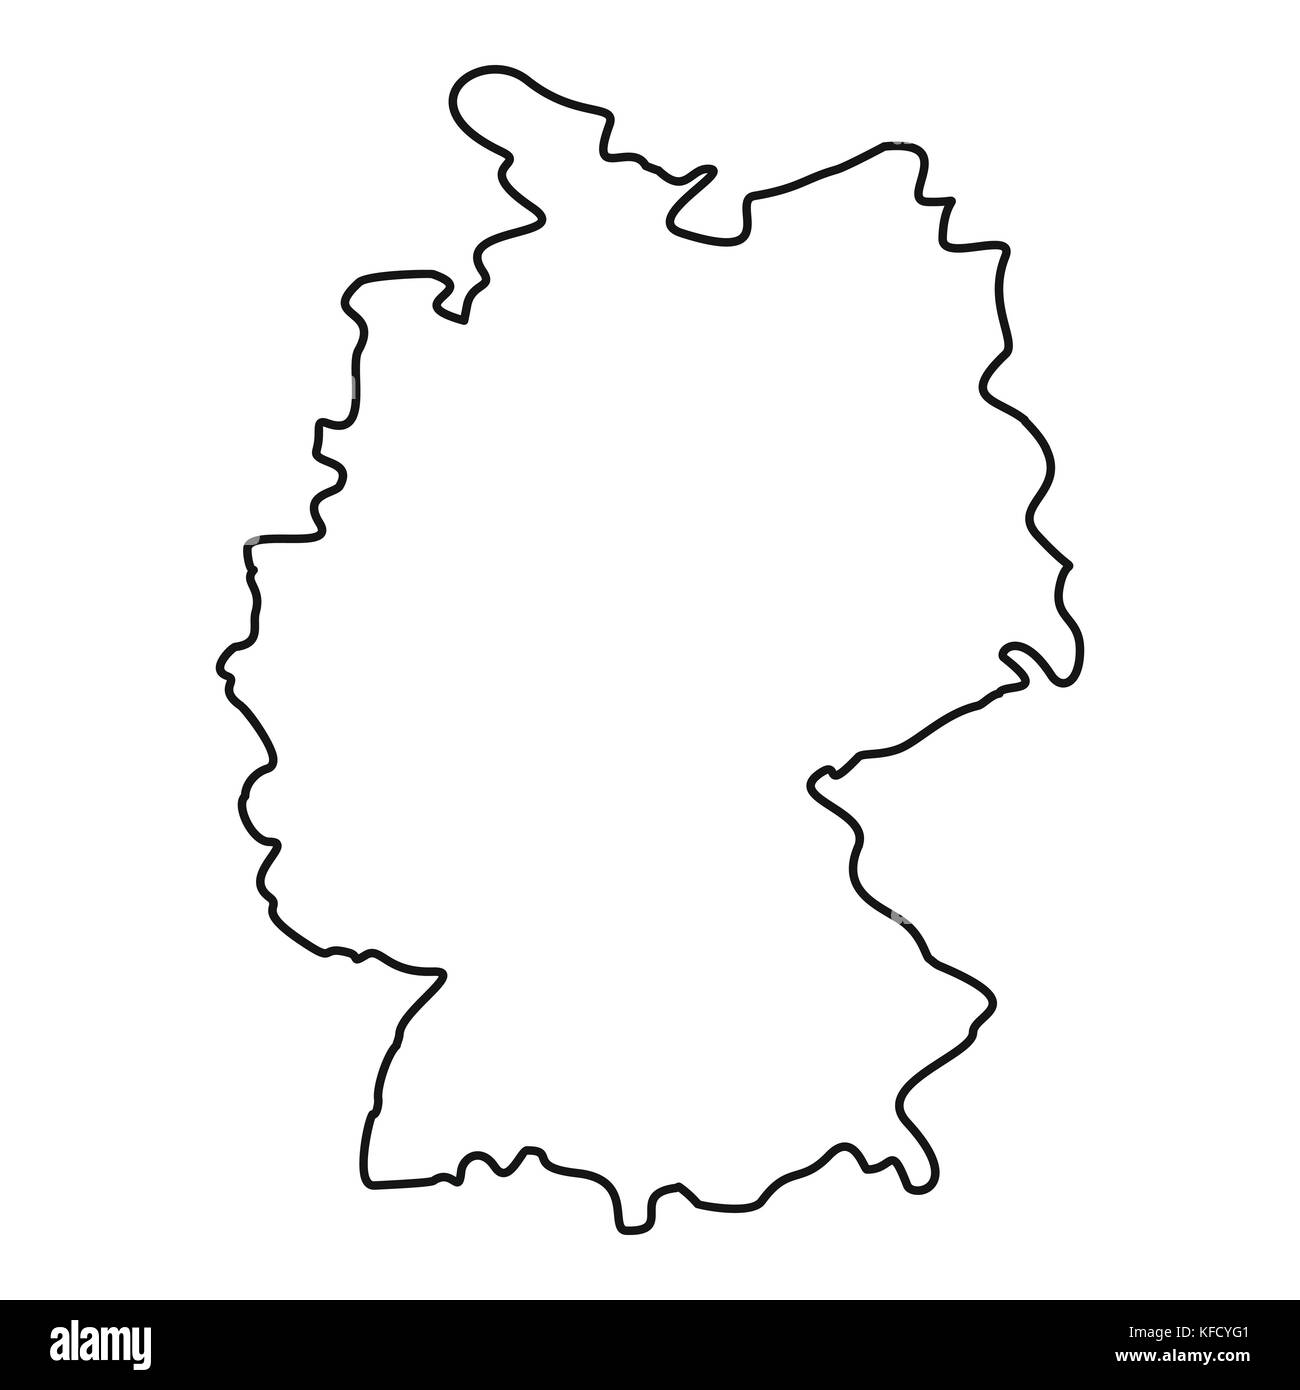 Map Of Germany Outline.Germany Map Icon Outline Style Stock Vector Art Illustration